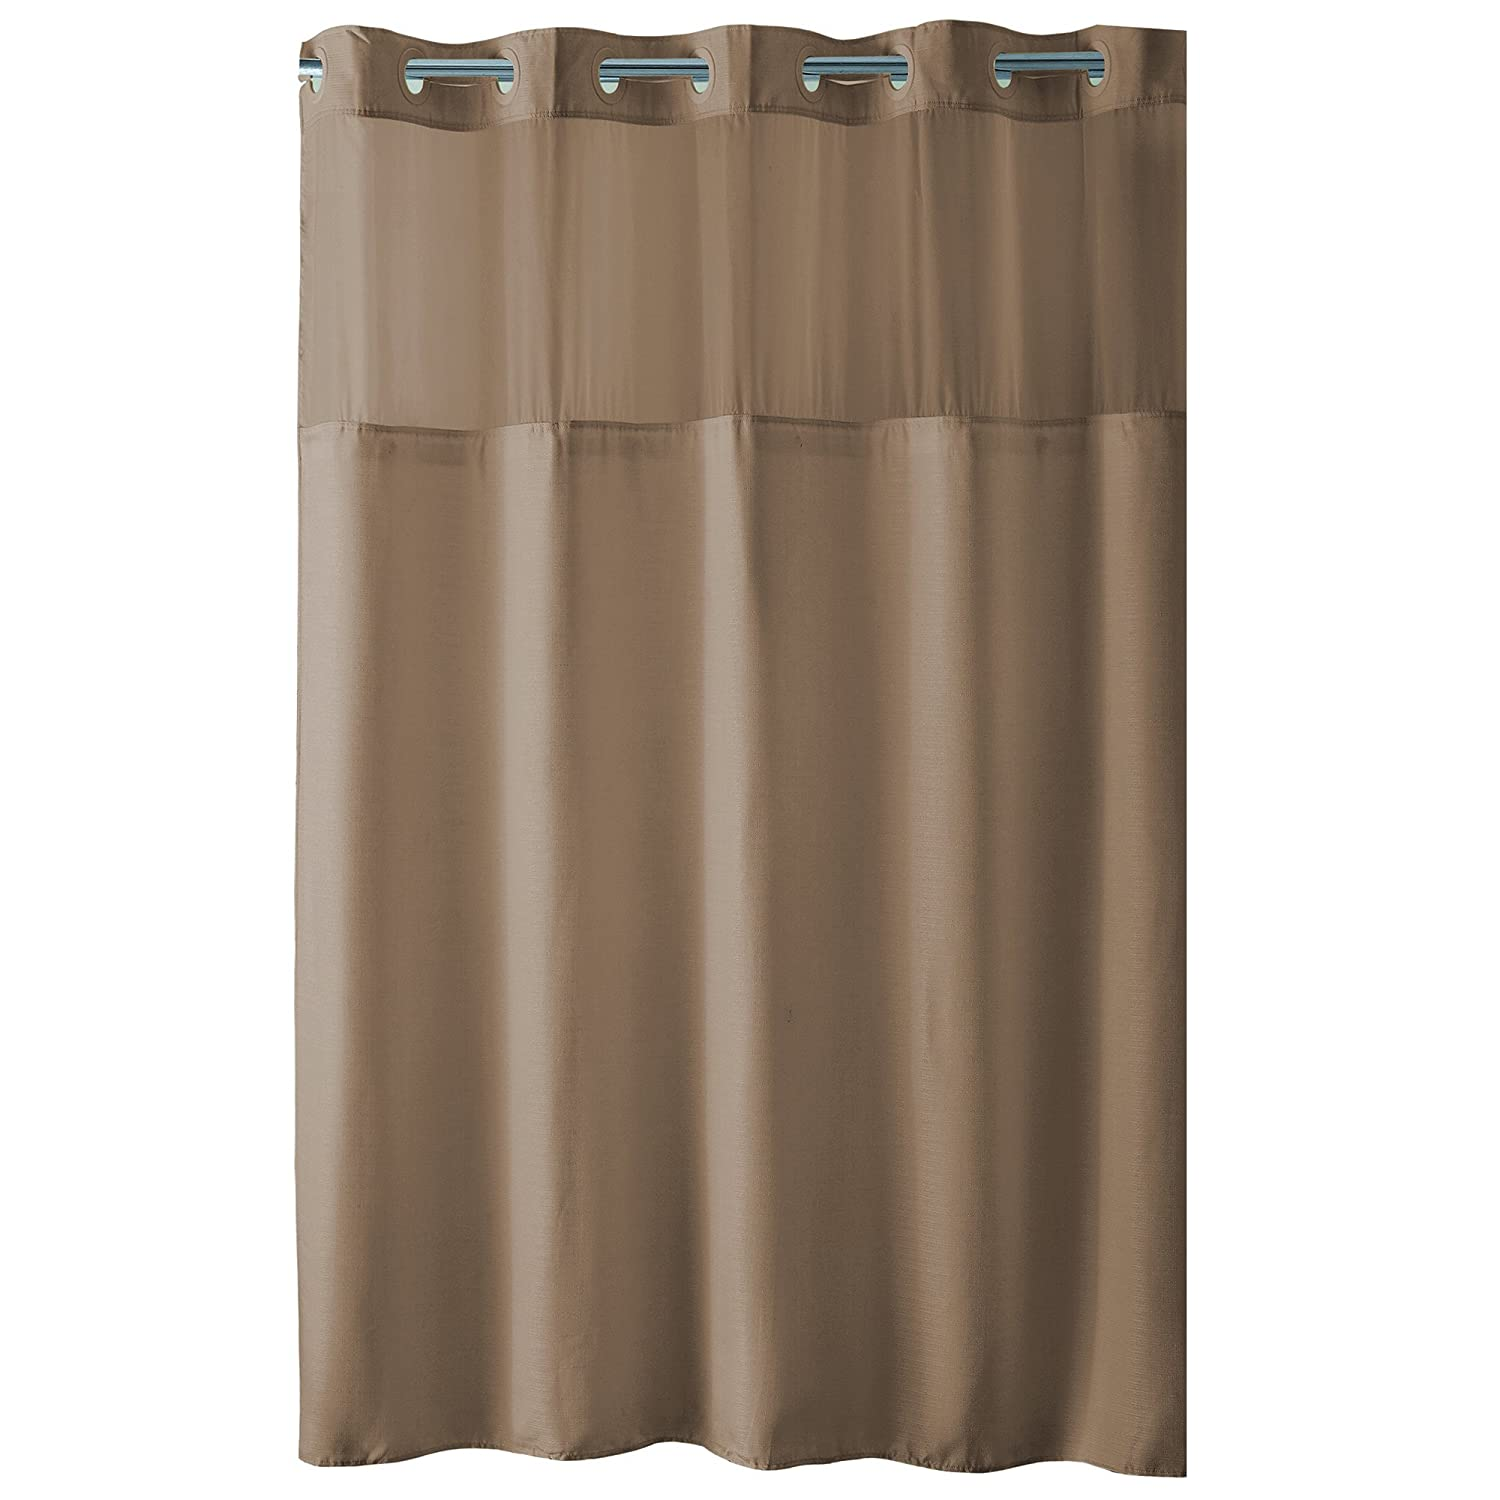 Amazon.com: Hookless High Point PEVA Lined Shower Curtain, Taupe ...